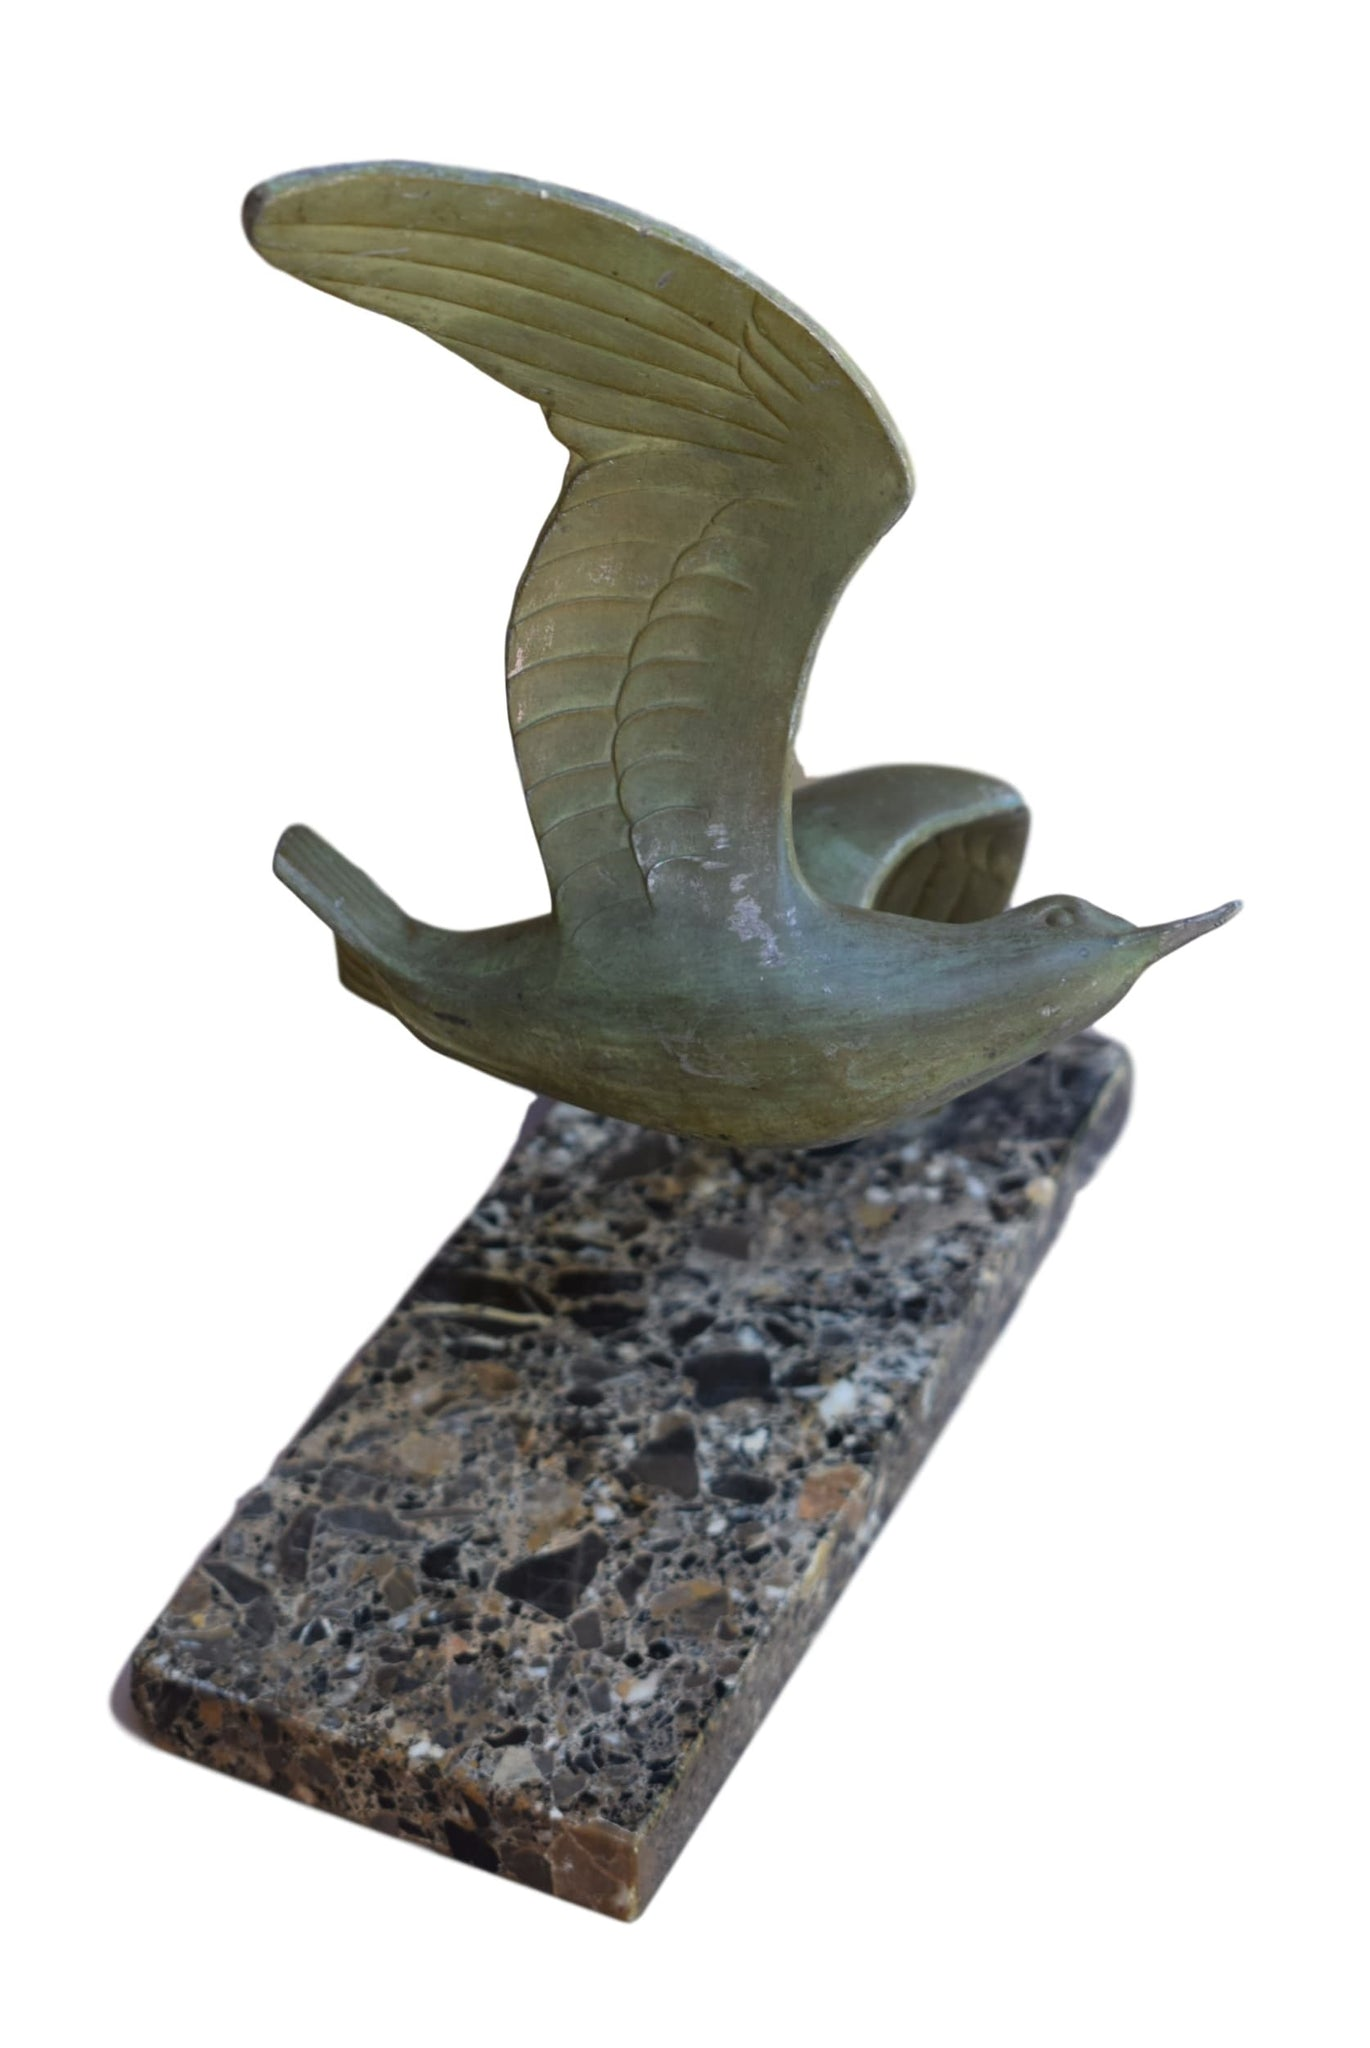 French Art Deco Sculpture of a Flying Seagull by M.Font 1930 on Marble Base - Charmantiques